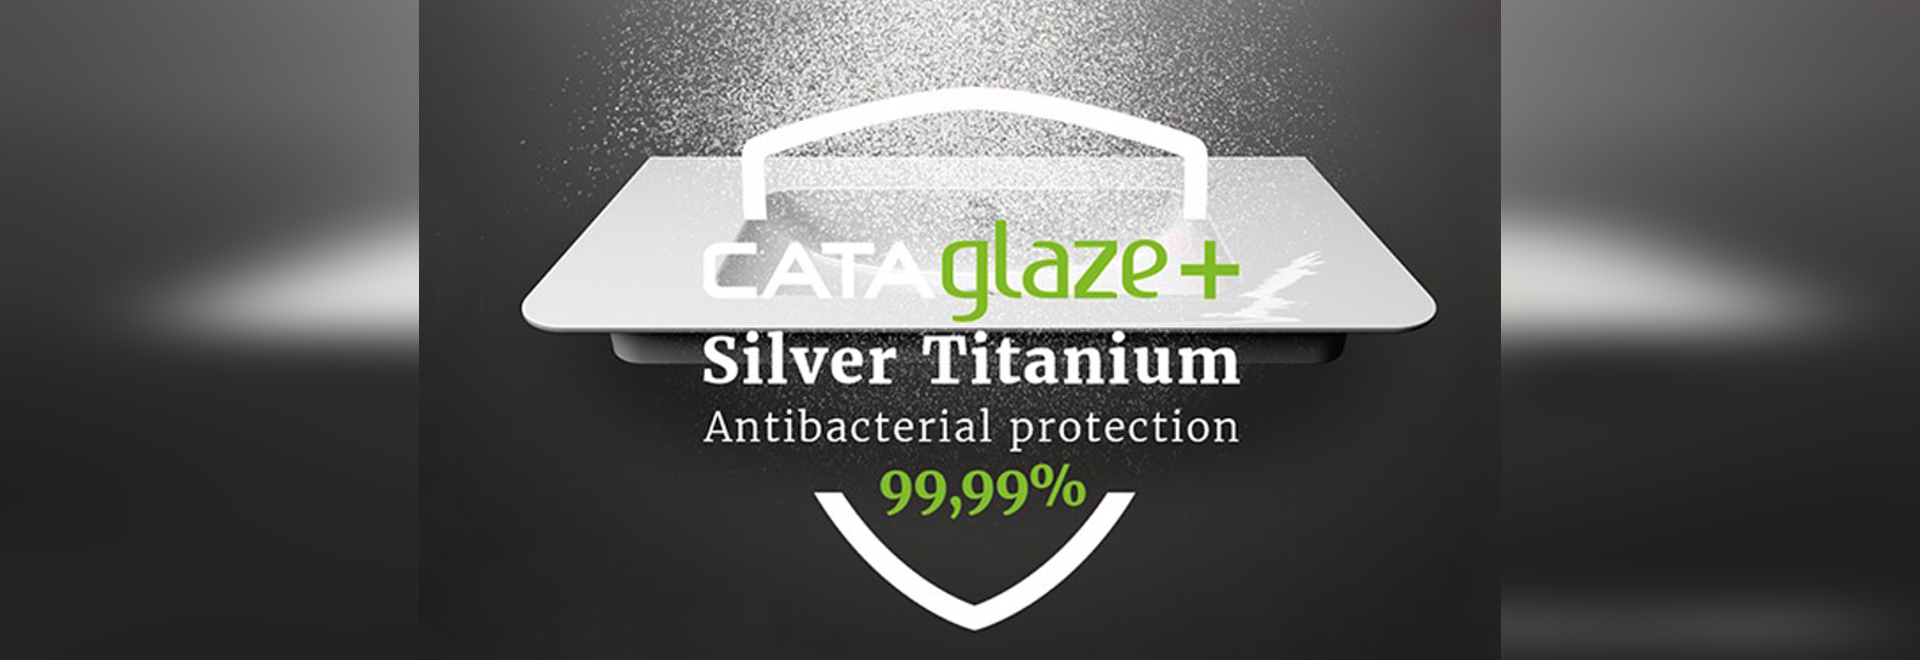 CATAGLAZE®+ SILVER TITANIUM THE INNOVATIVE ANTIBACTERIAL GLAZE IS STANDARD ON ALL CATALANO PRODUCTS